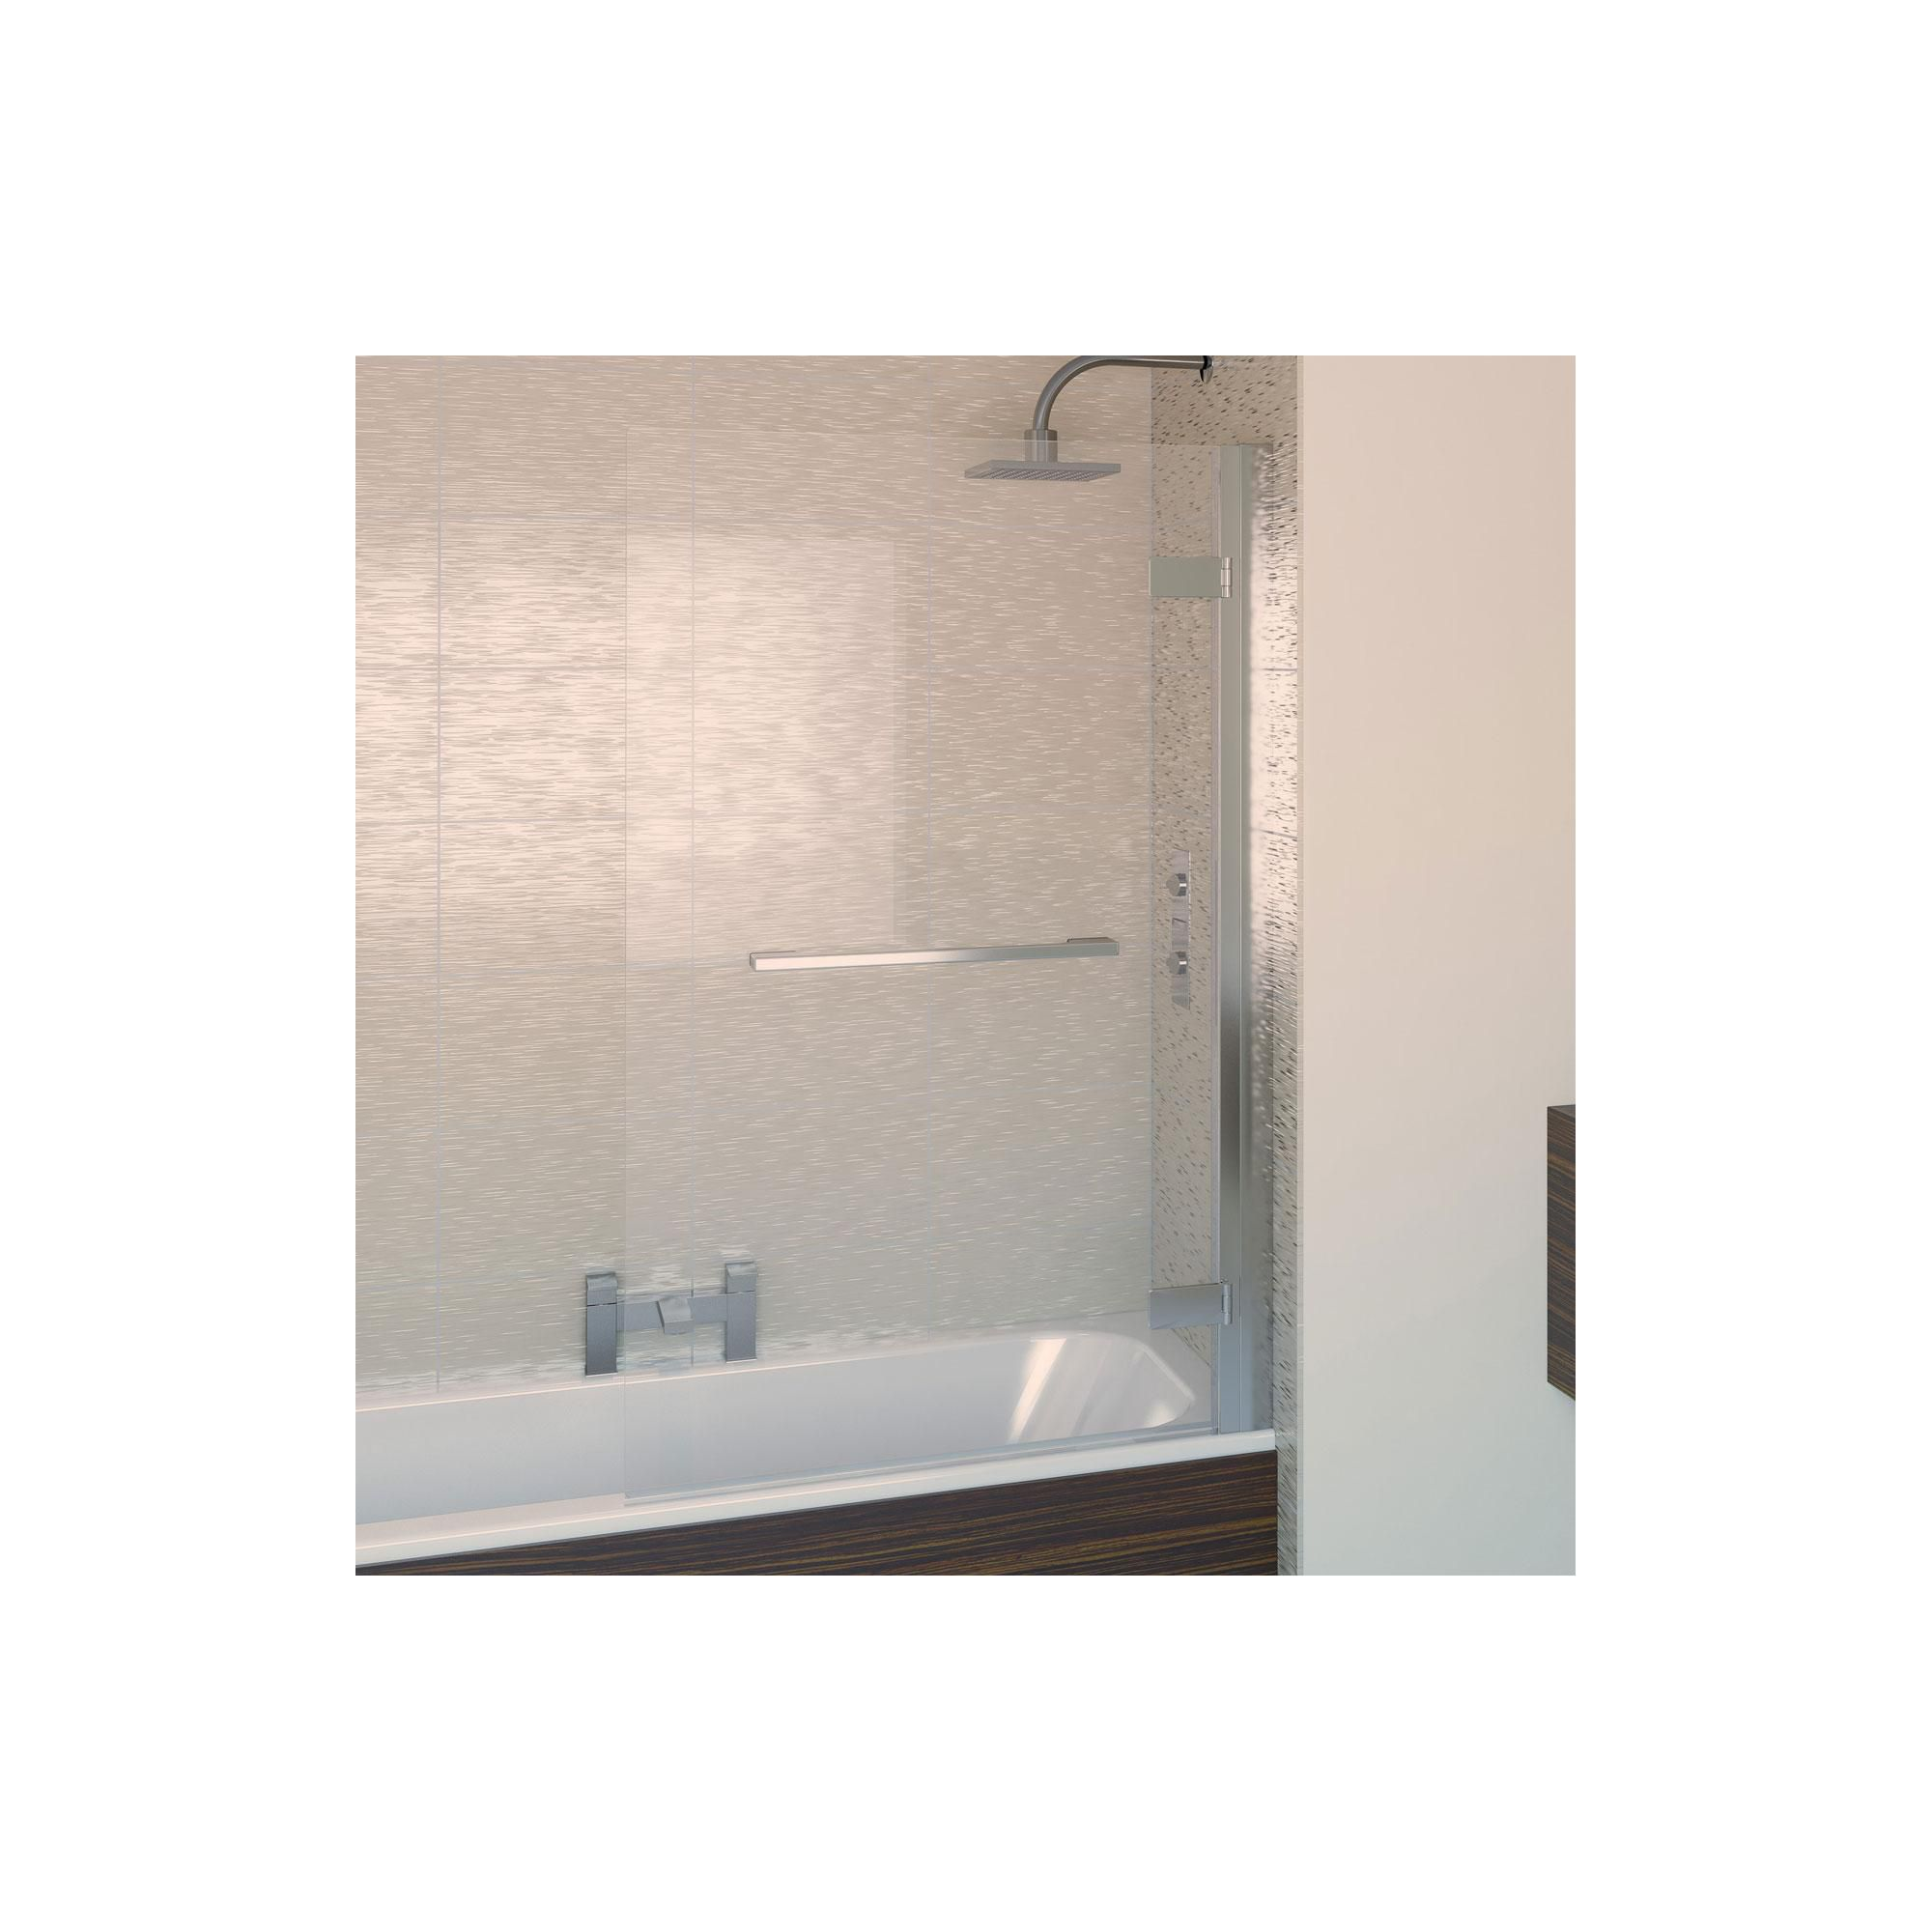 Aqualux AQUA8 Hinge Square Bath Screen, 950mm Wide, Polished Silver Frame, 8mm Glass at Tesco Direct